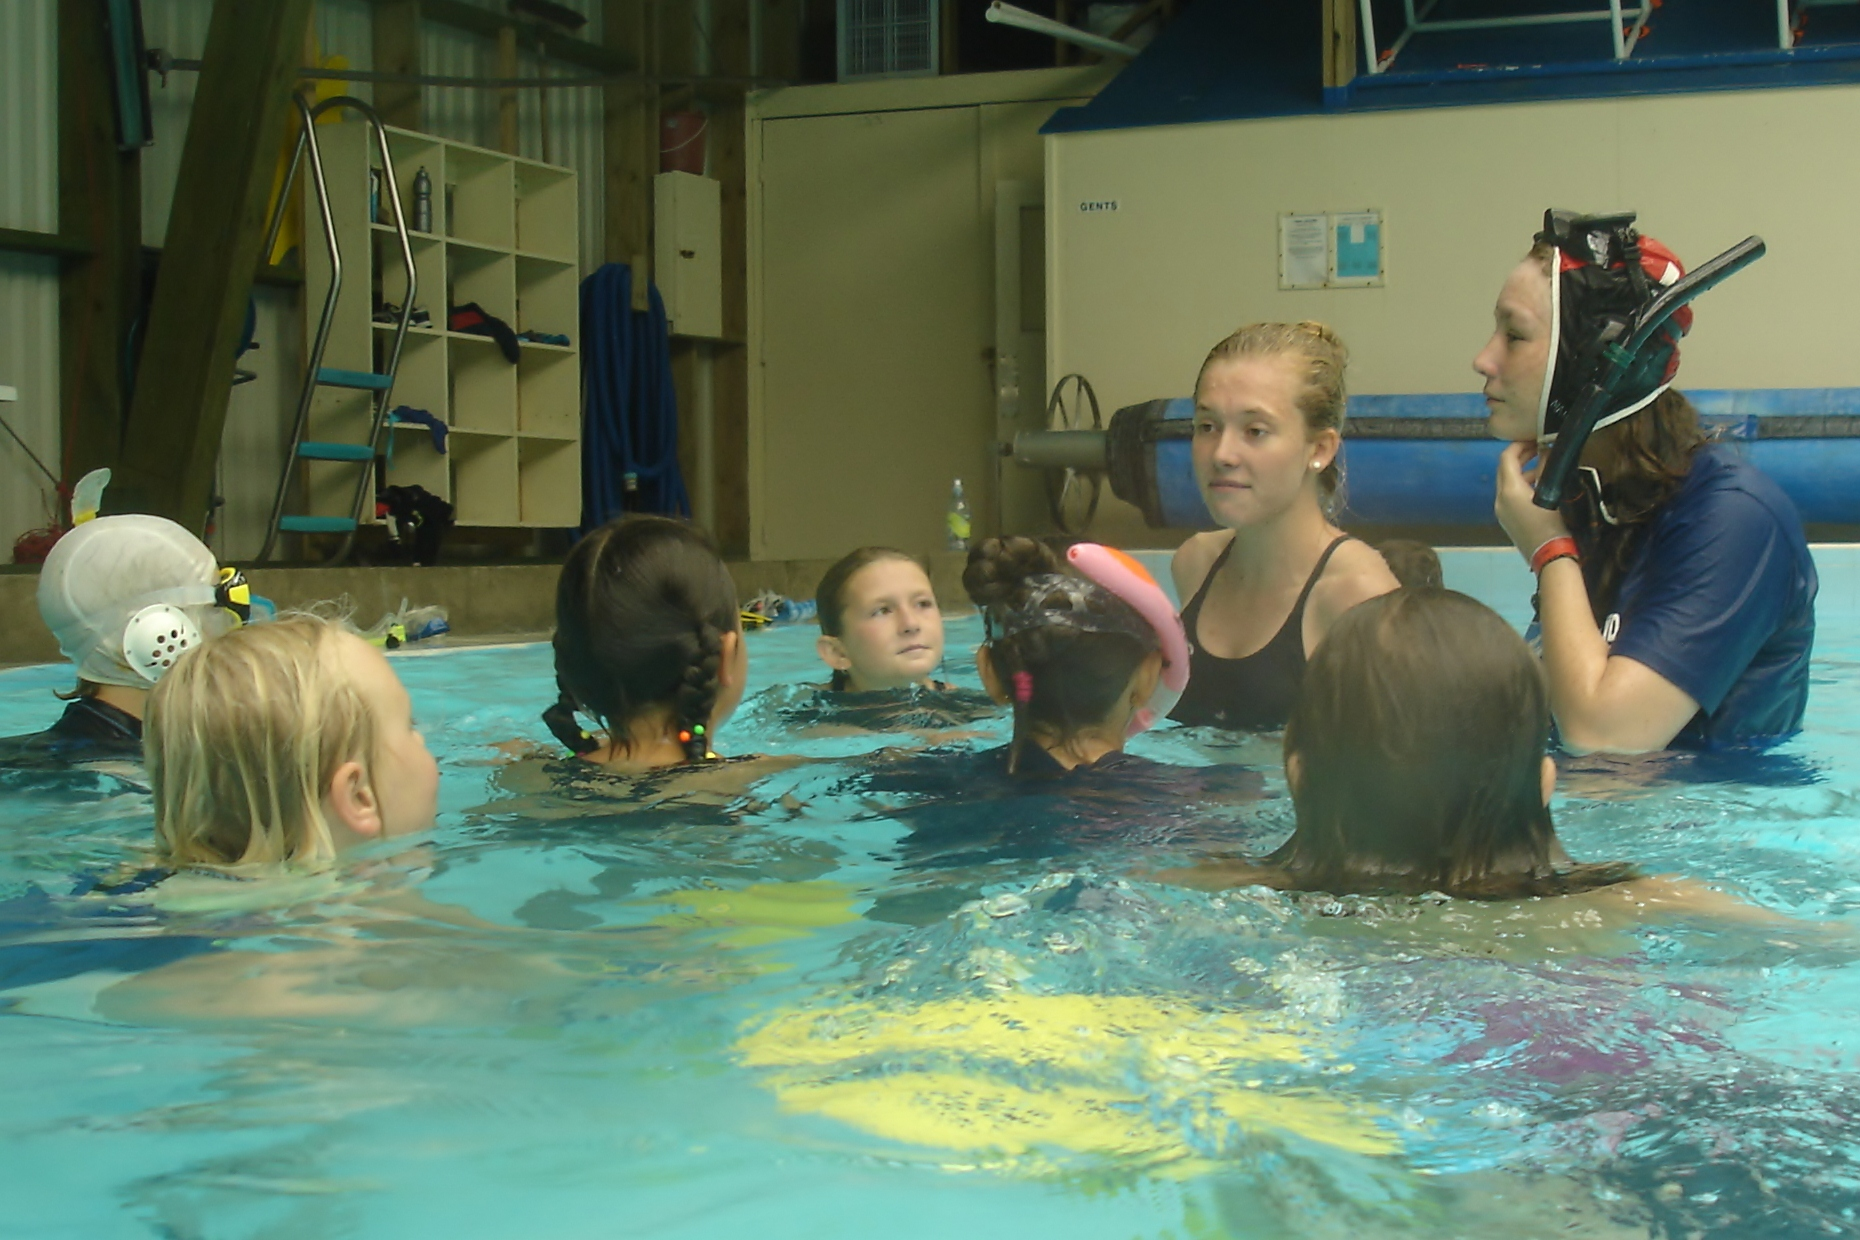 UWH Youth Coaches Sarah Wilson and Jorgia Bayes leading a group of young snorkellers, January 2014